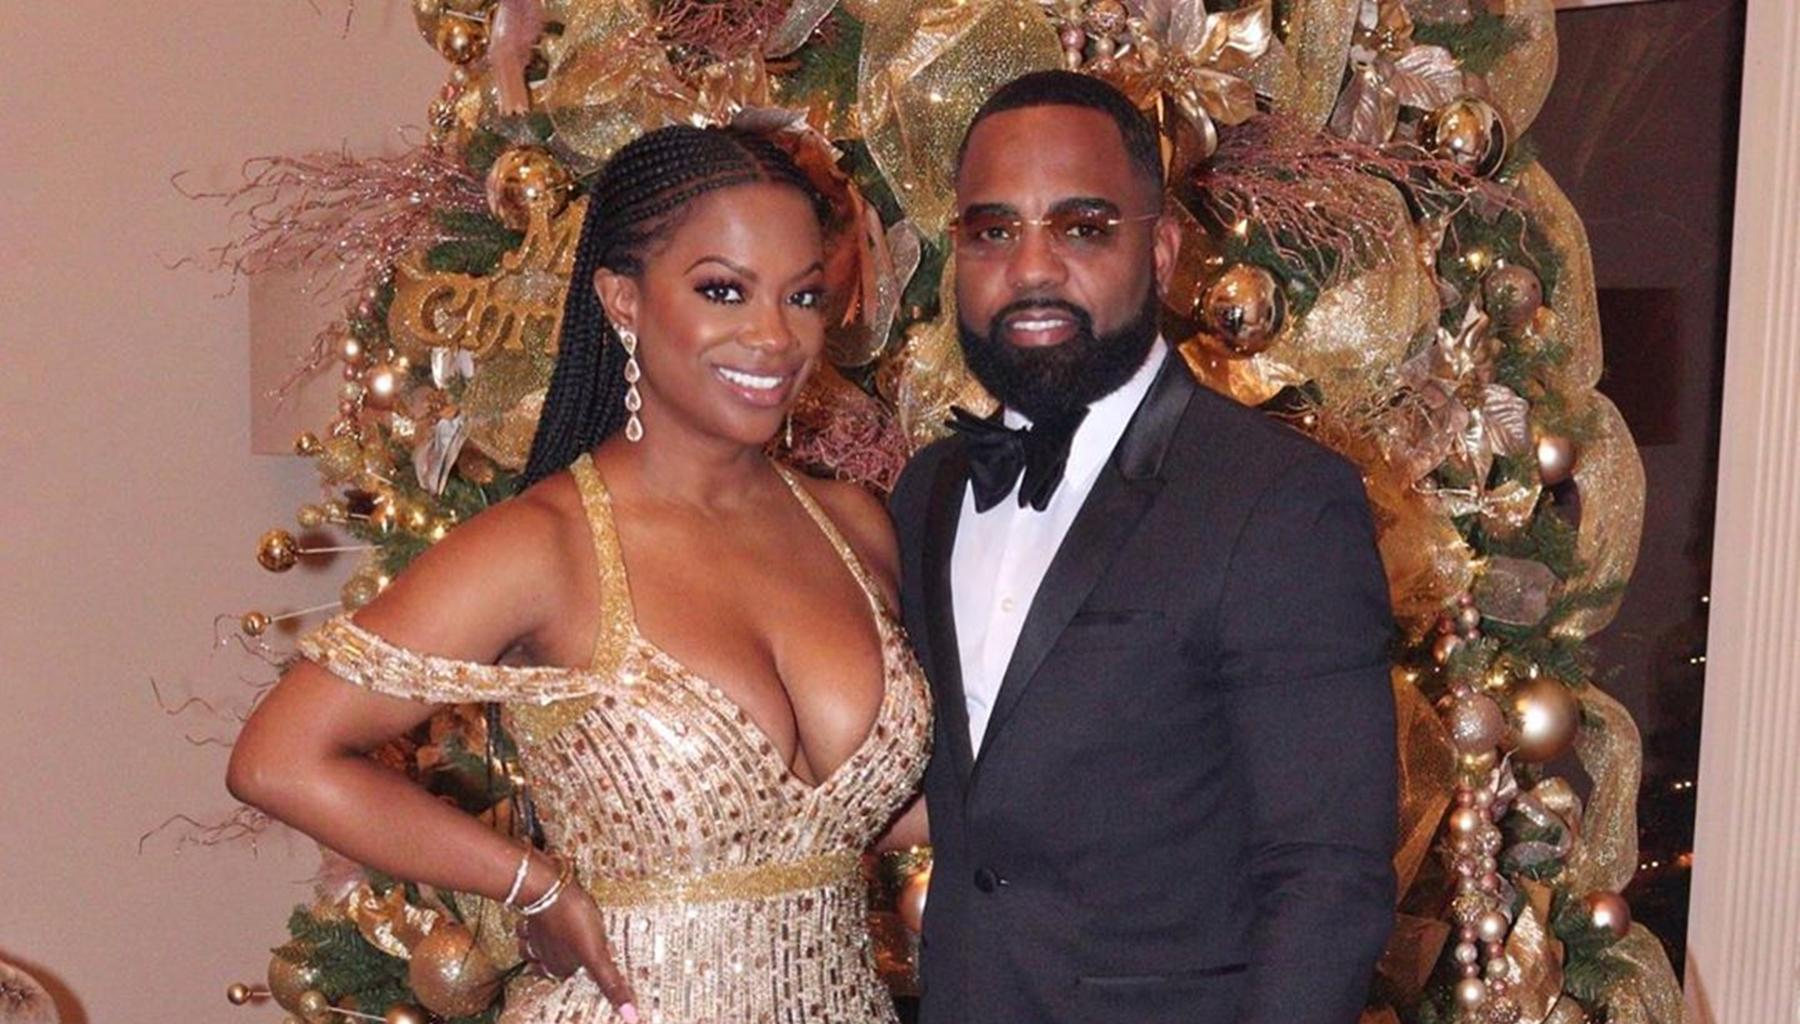 Kandi Burruss And Todd Tucker Are Harshly Criticized For Doing This To Daughter Kaela Tucker -- 'Real Housewives Of Atlanta' Star Defends Herself In New Video